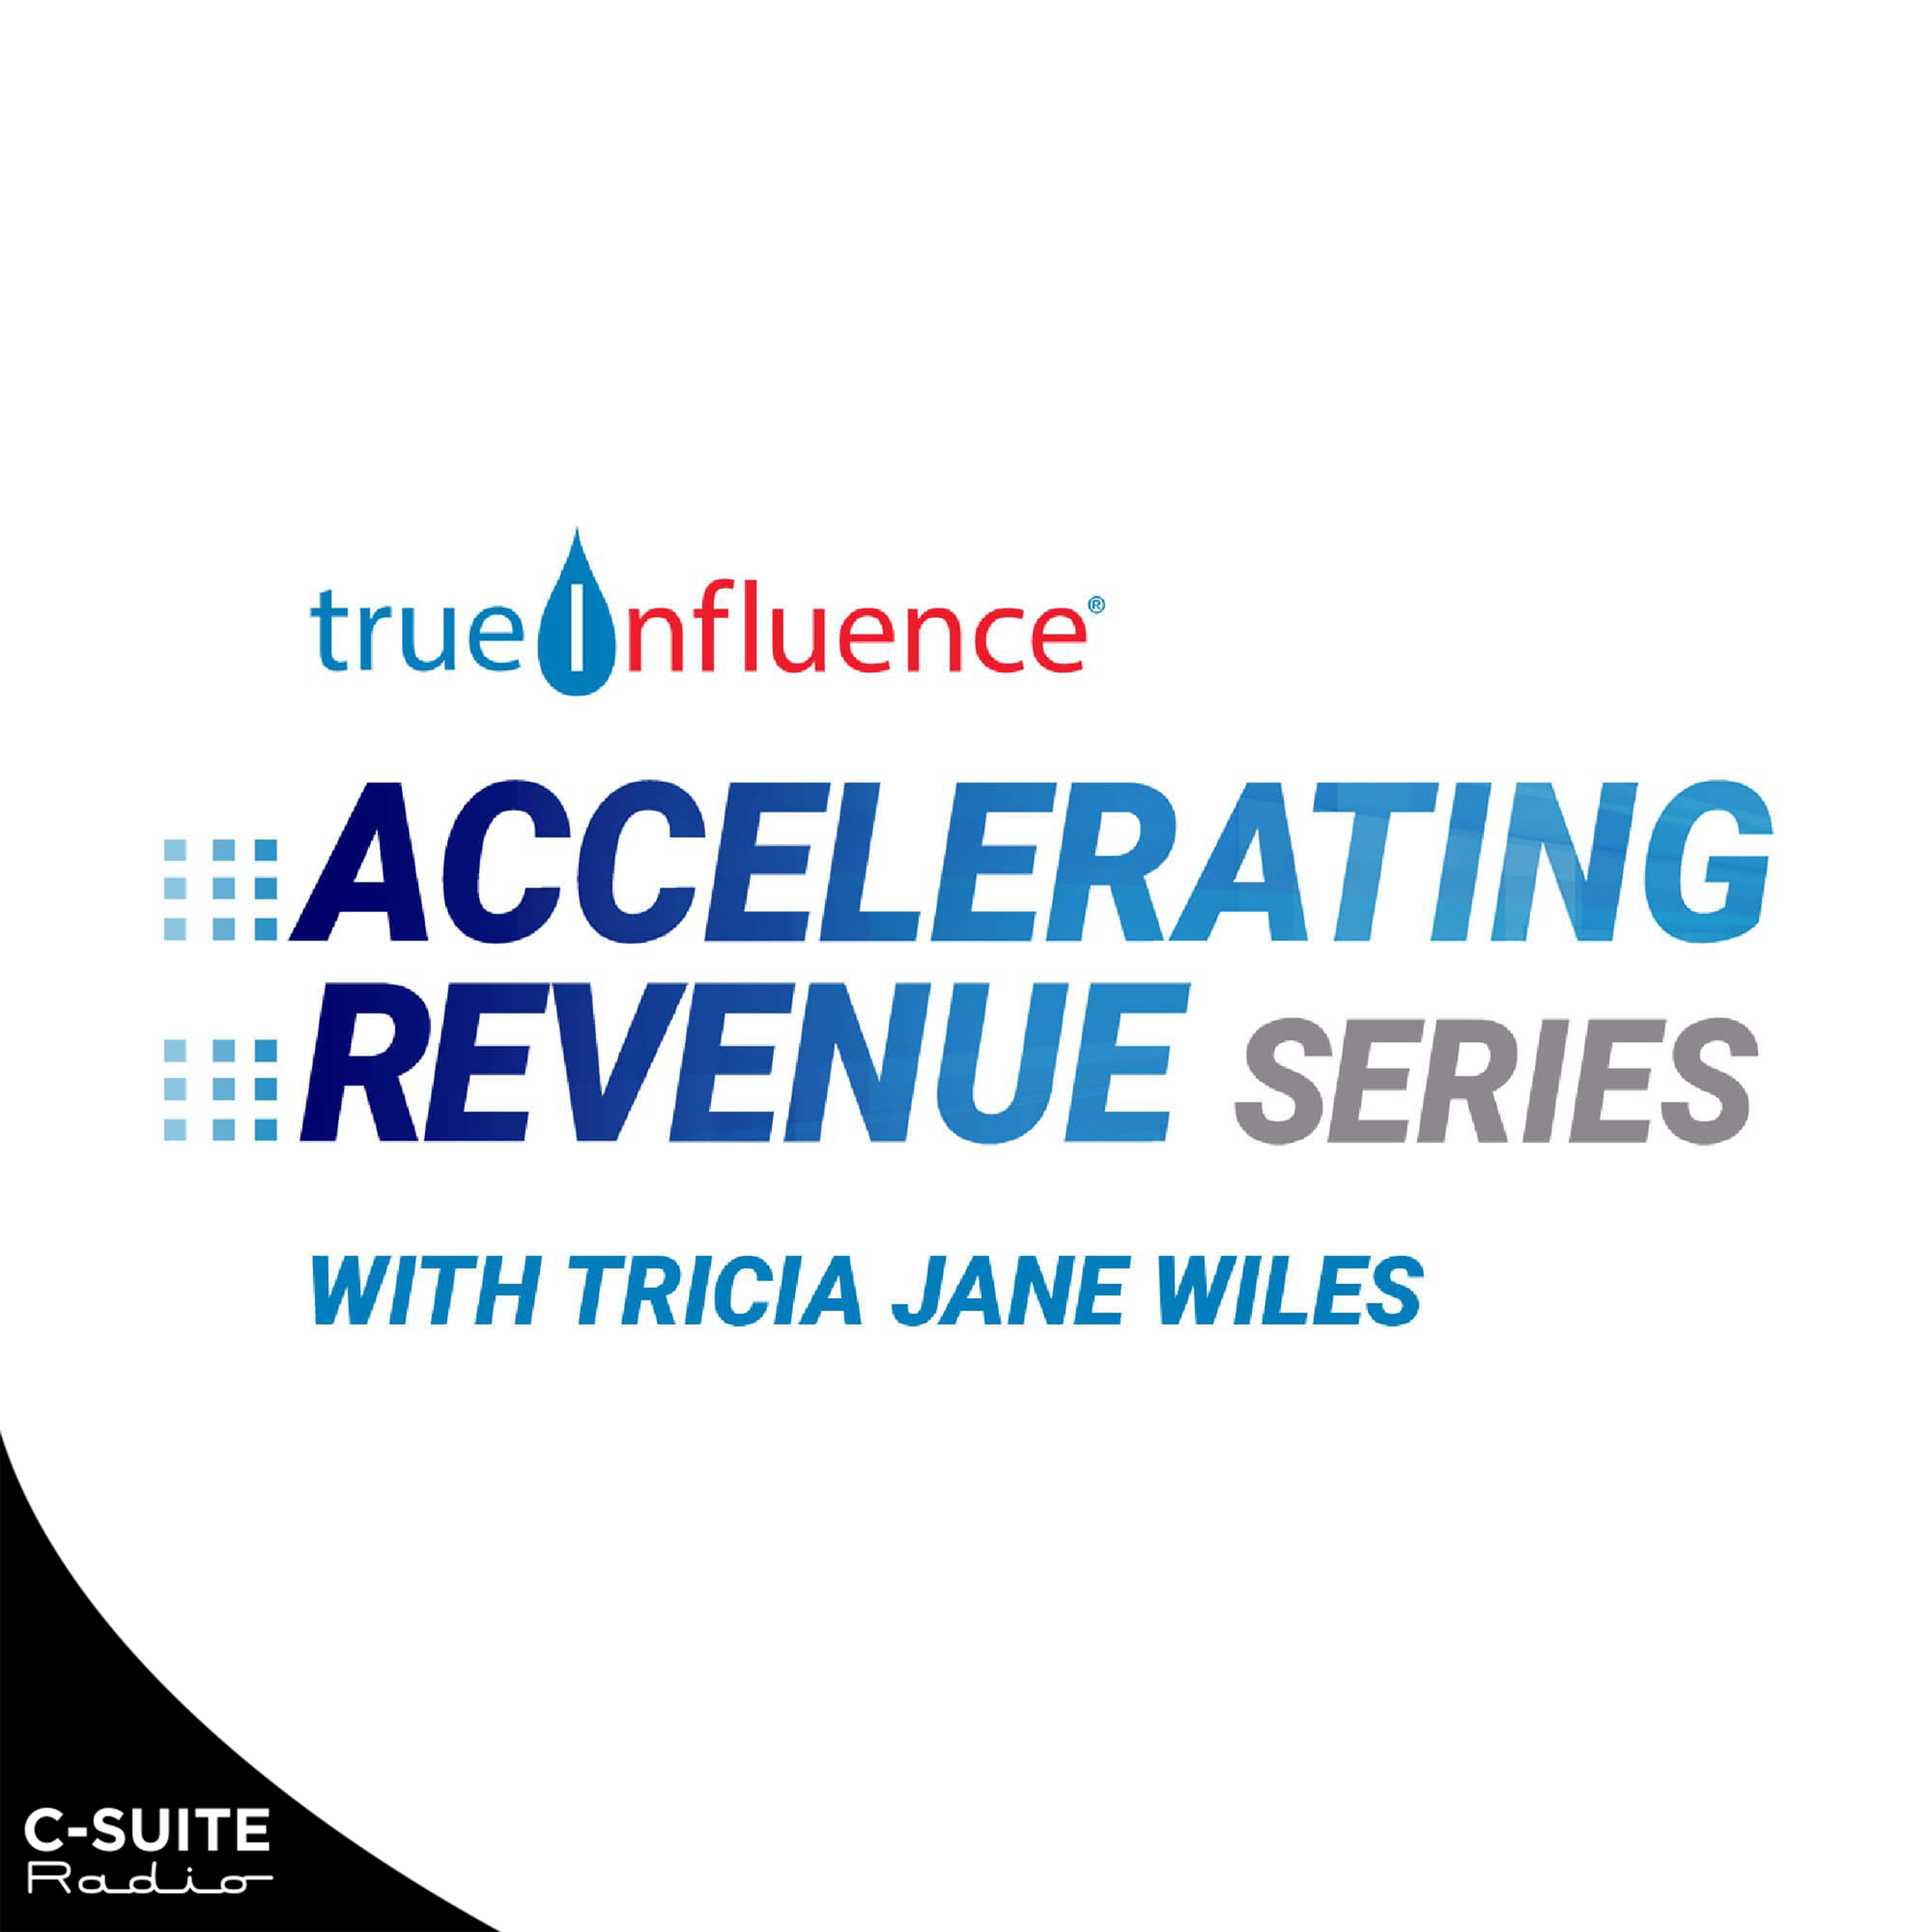 Accelerating Revenue Series